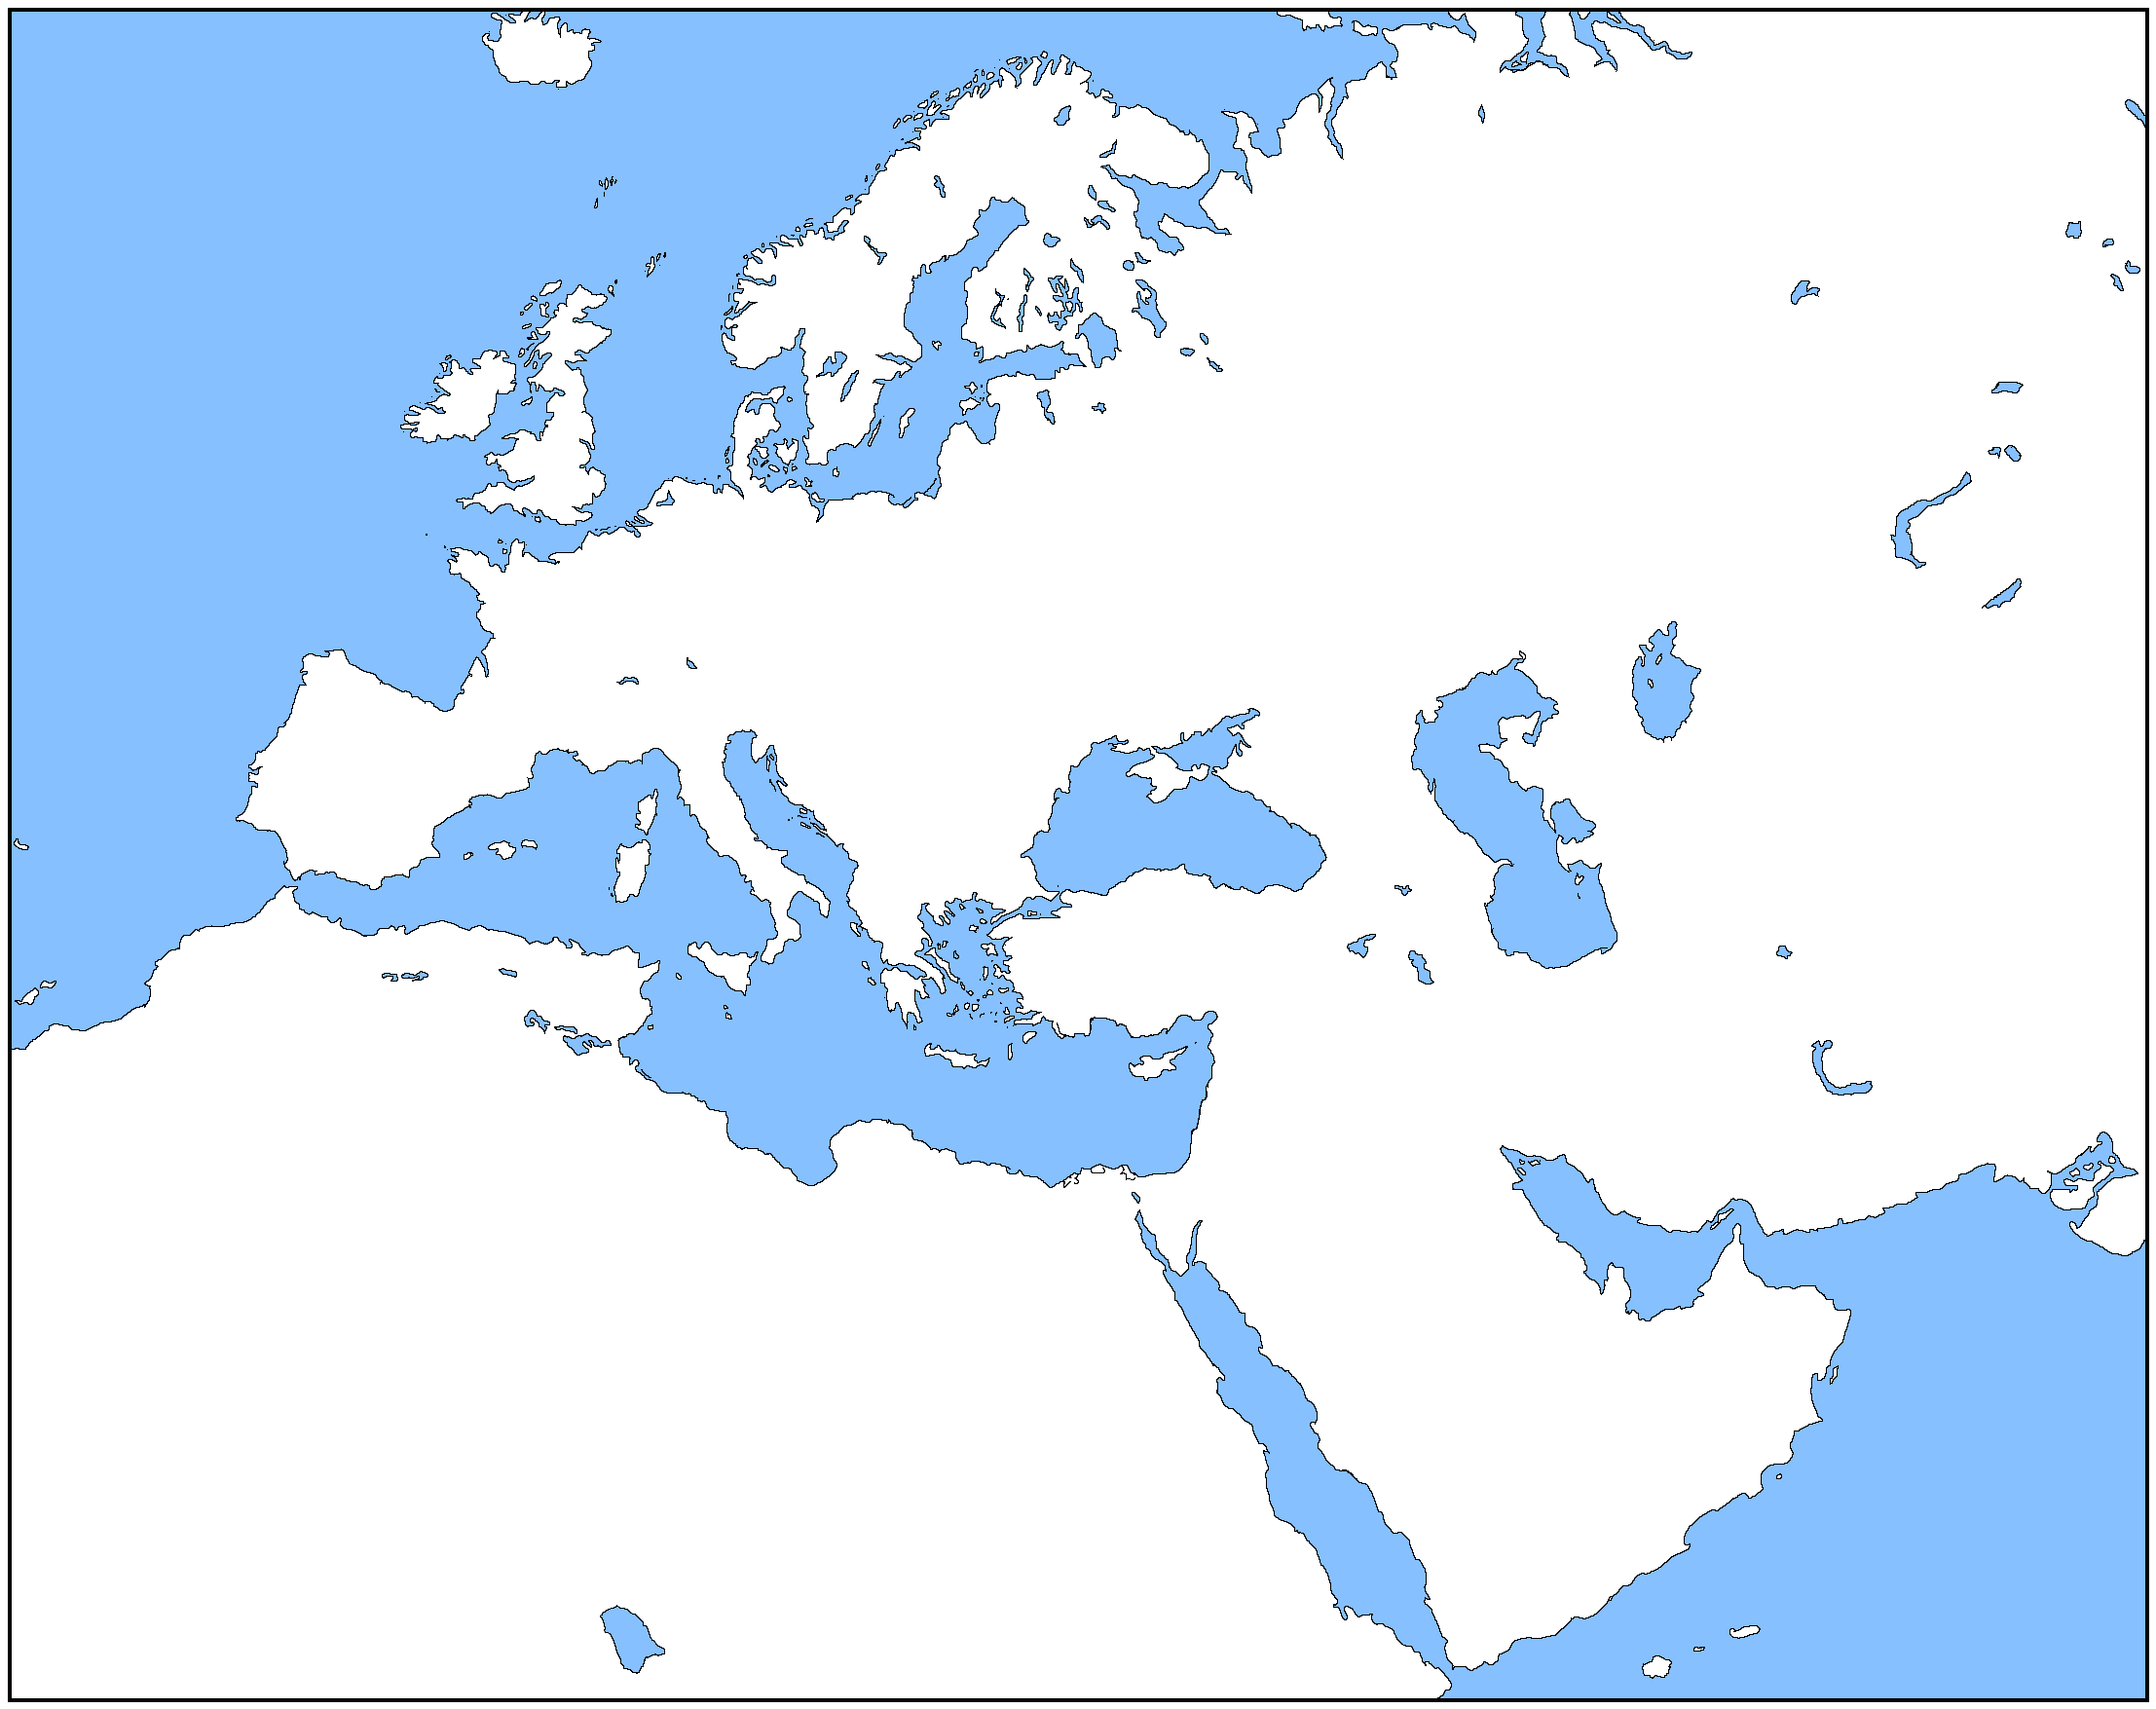 Outline Map Of Europe And North Africa With Blank And | maps ... on blank map of botswana, blank map of togo, blank map of the pacific islands, blank map of central african republic, blank map of the pacific ocean, blank map of latvia, blank africa and middle east map, clear map of east africa, blank map of kyrgyzstan, blank map of middle west, blank map of gabon, blank political map of middle east, blank map europe north africa, blank map of comoros, blank map of cameroon, blank maps of africa for students, blank map of the arabian peninsula, map of middle east and africa, blank africa map geography, blank map of the mediterranean basin,